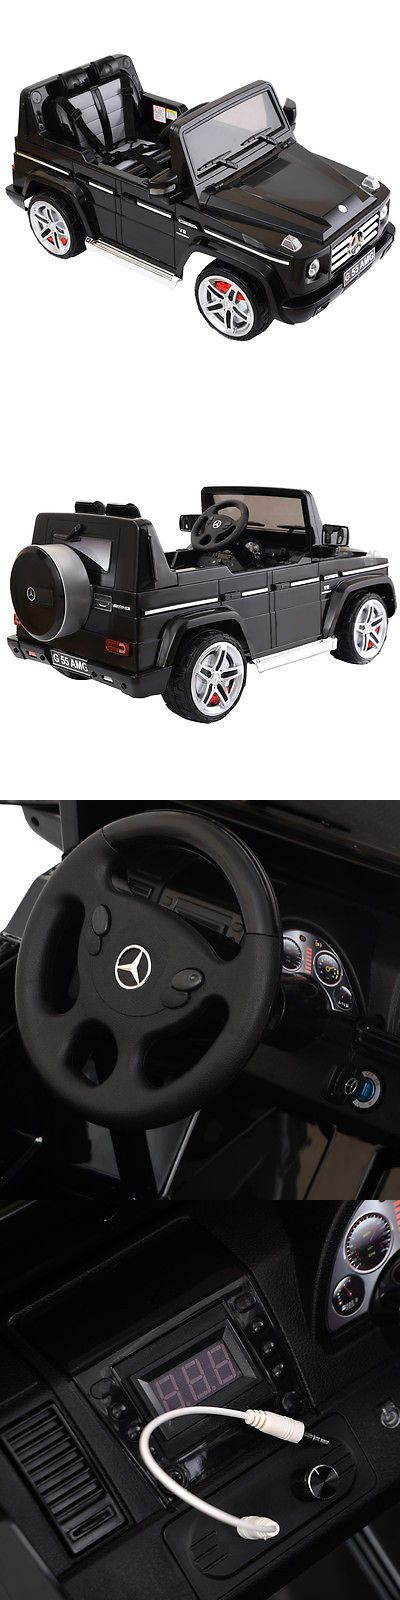 Ride On Toys and Accessories 145944: Mercedes Benz G55 12V Electric Kids Ride On Car Truck Licensed Rc Remote Control -> BUY IT NOW ONLY: $249.99 on eBay!